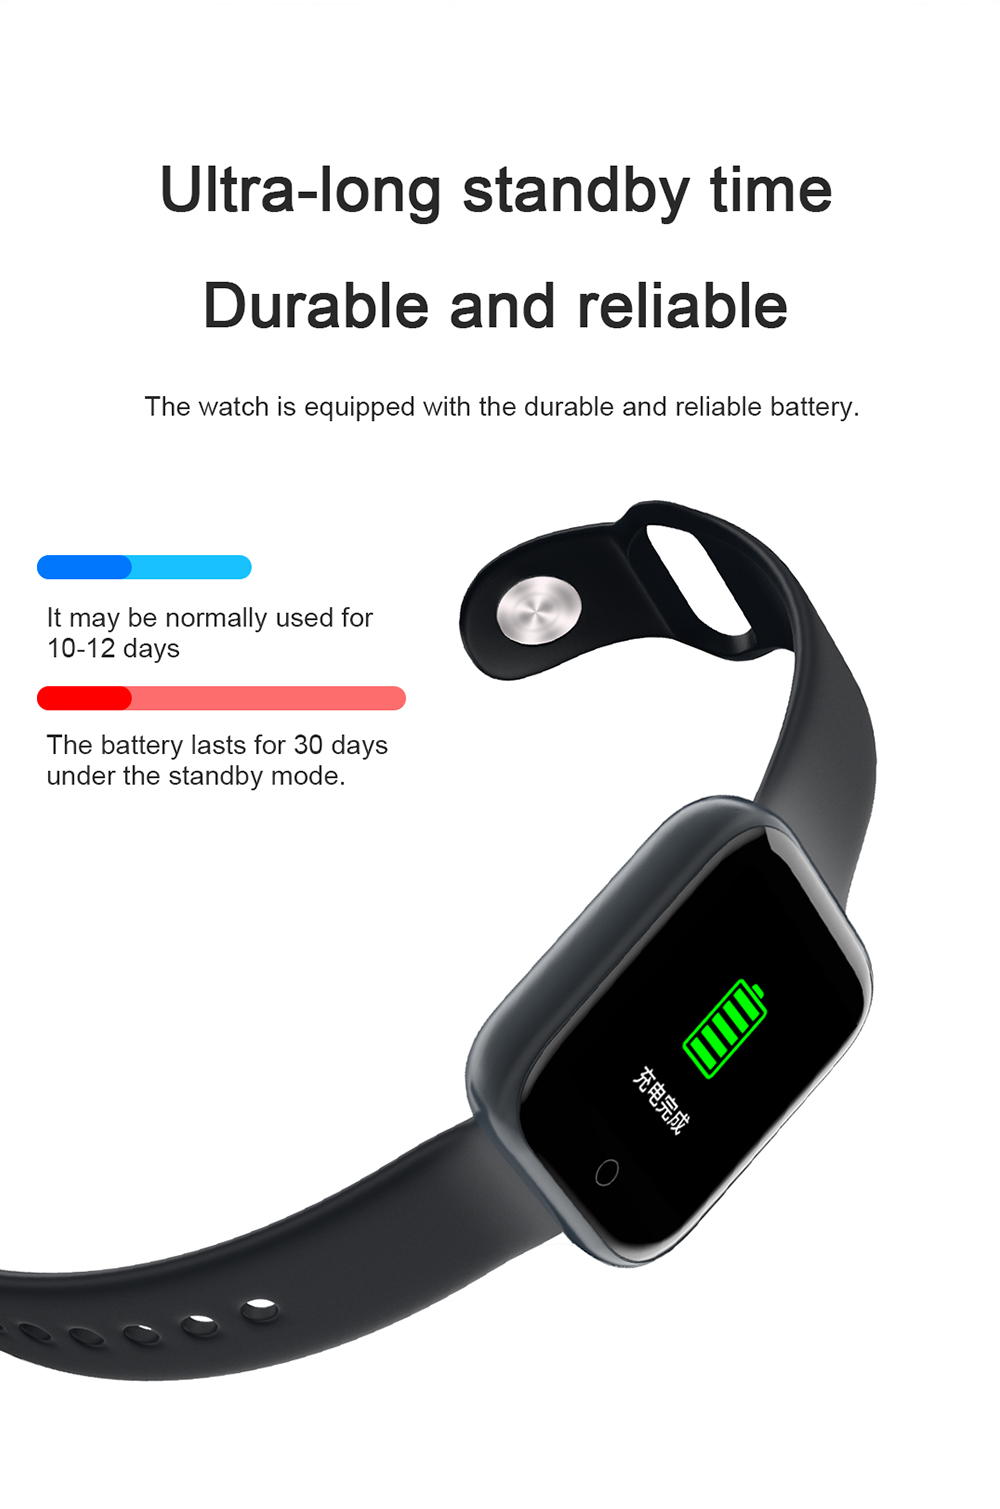 HTB1Doc.Xa67gK0jSZFHq6y9jVXaJ - New Women Waterproof Smart Watch T80/P70 Bluetooth Smartwatch For Apple IPhone Xiaomi Heart Rate Monitor Fitness Tracker